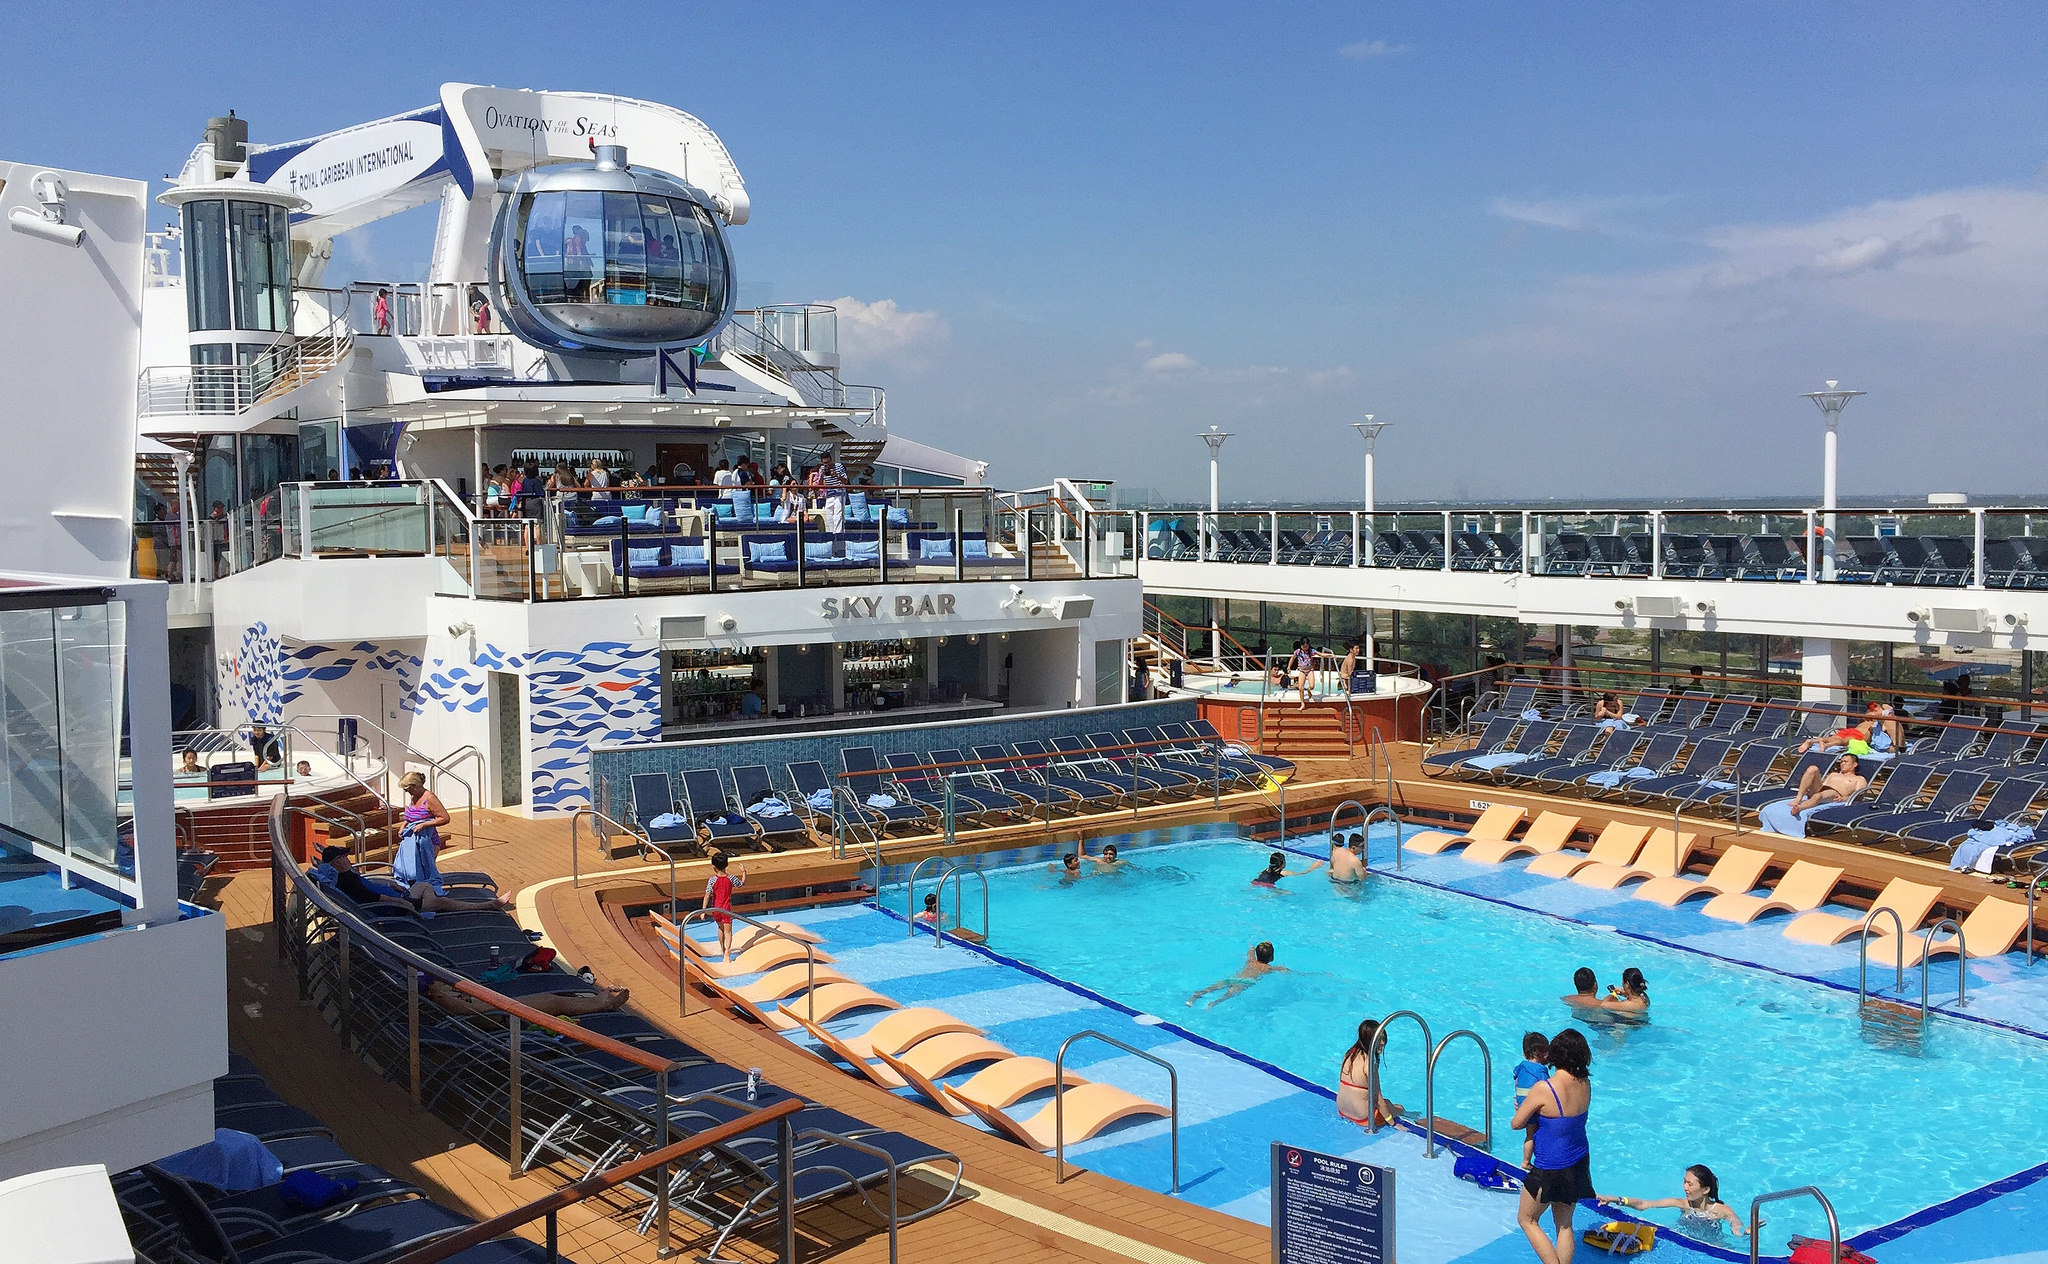 Things To Do In Royal Caribbean's Ovation of the Seas